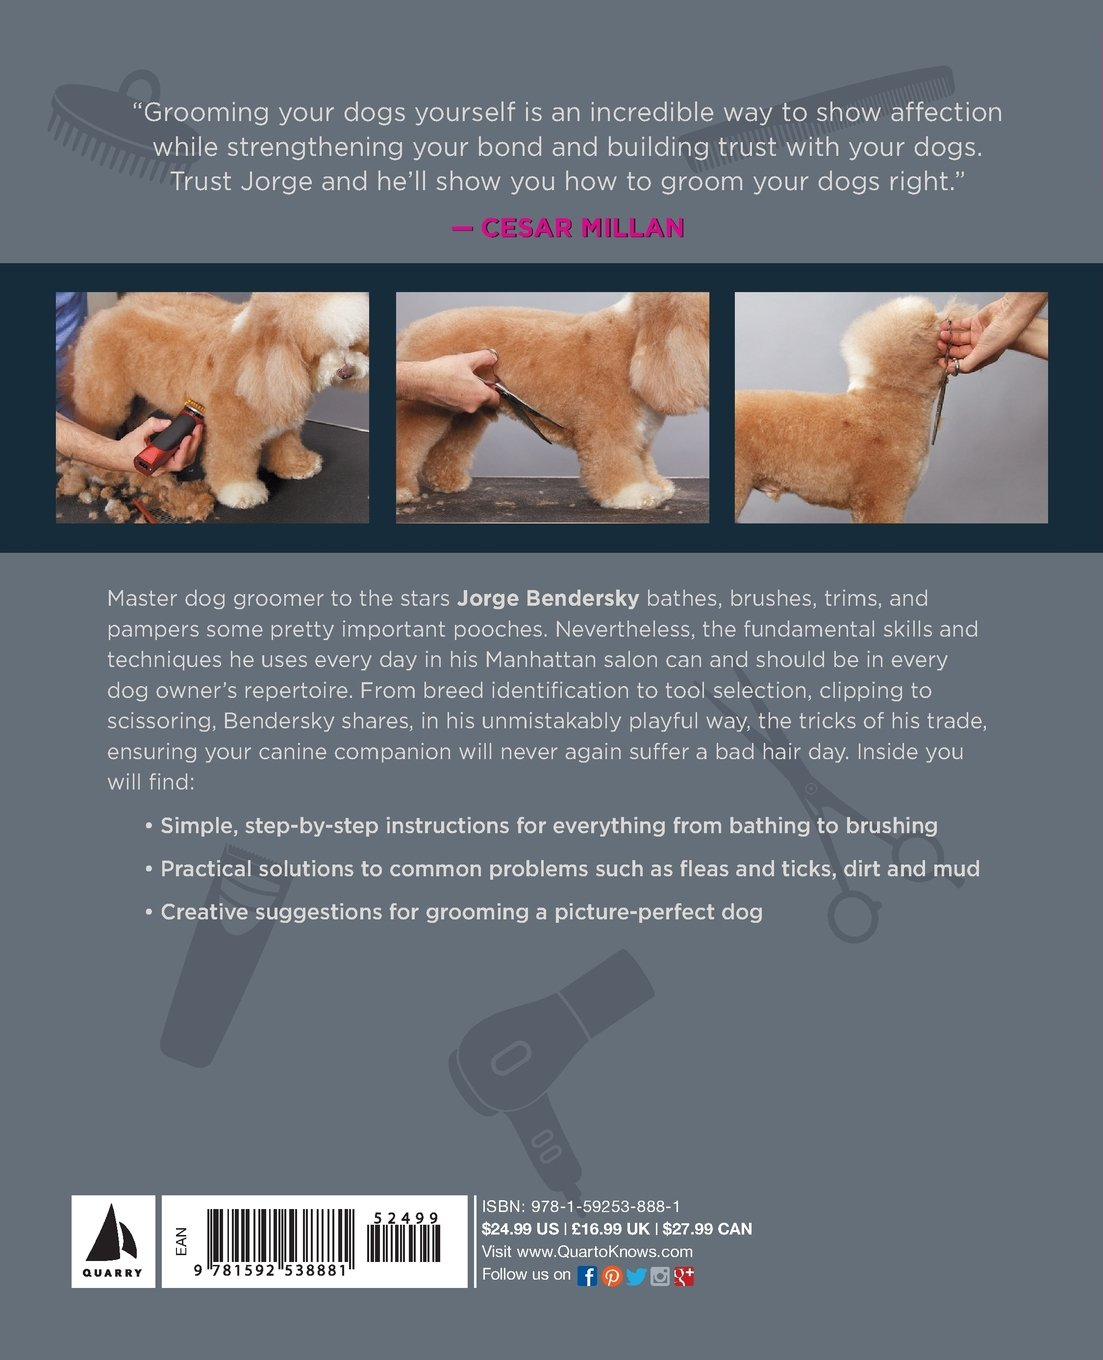 Diy dog grooming from puppy cuts to best in show everything you diy dog grooming from puppy cuts to best in show everything you need to know step by step jorge bendersky cesar milan 0080665010460 amazon books solutioingenieria Images